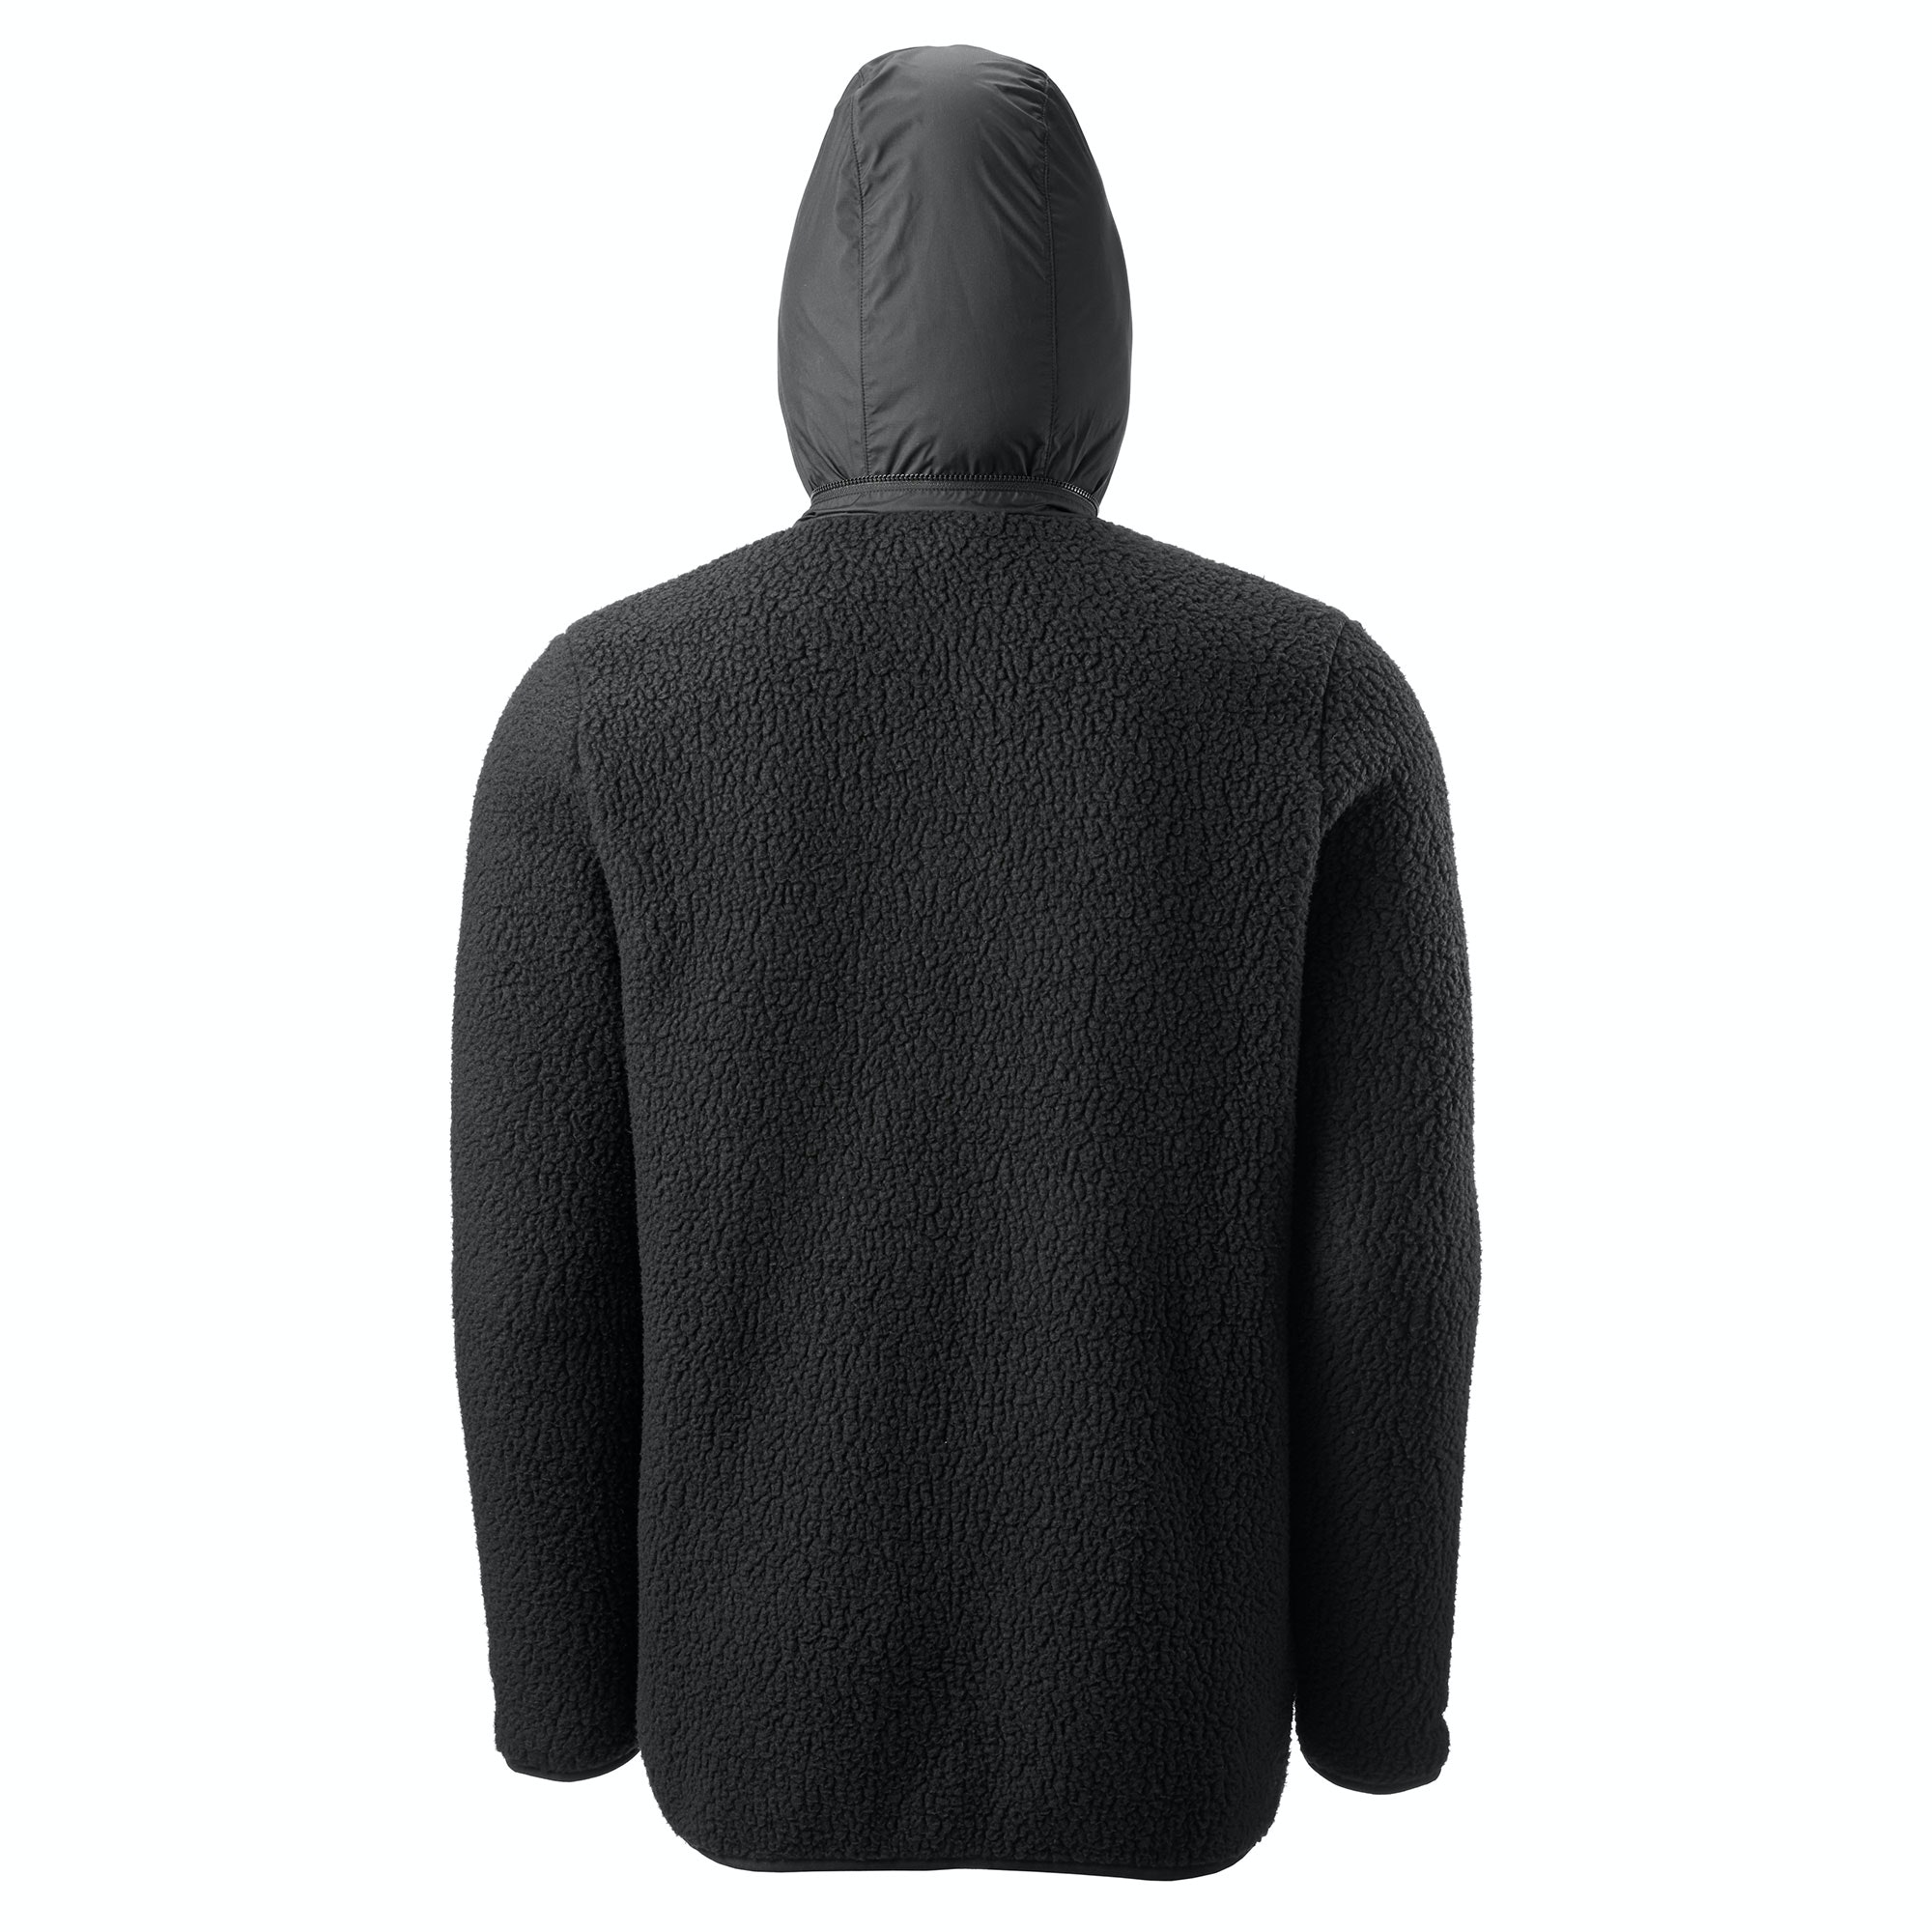 NEW-Kathmandu-Baffin-Island-Men-039-s-Full-Zip-Hooded-Warm-Outdoor-Fleece-Jacket thumbnail 6